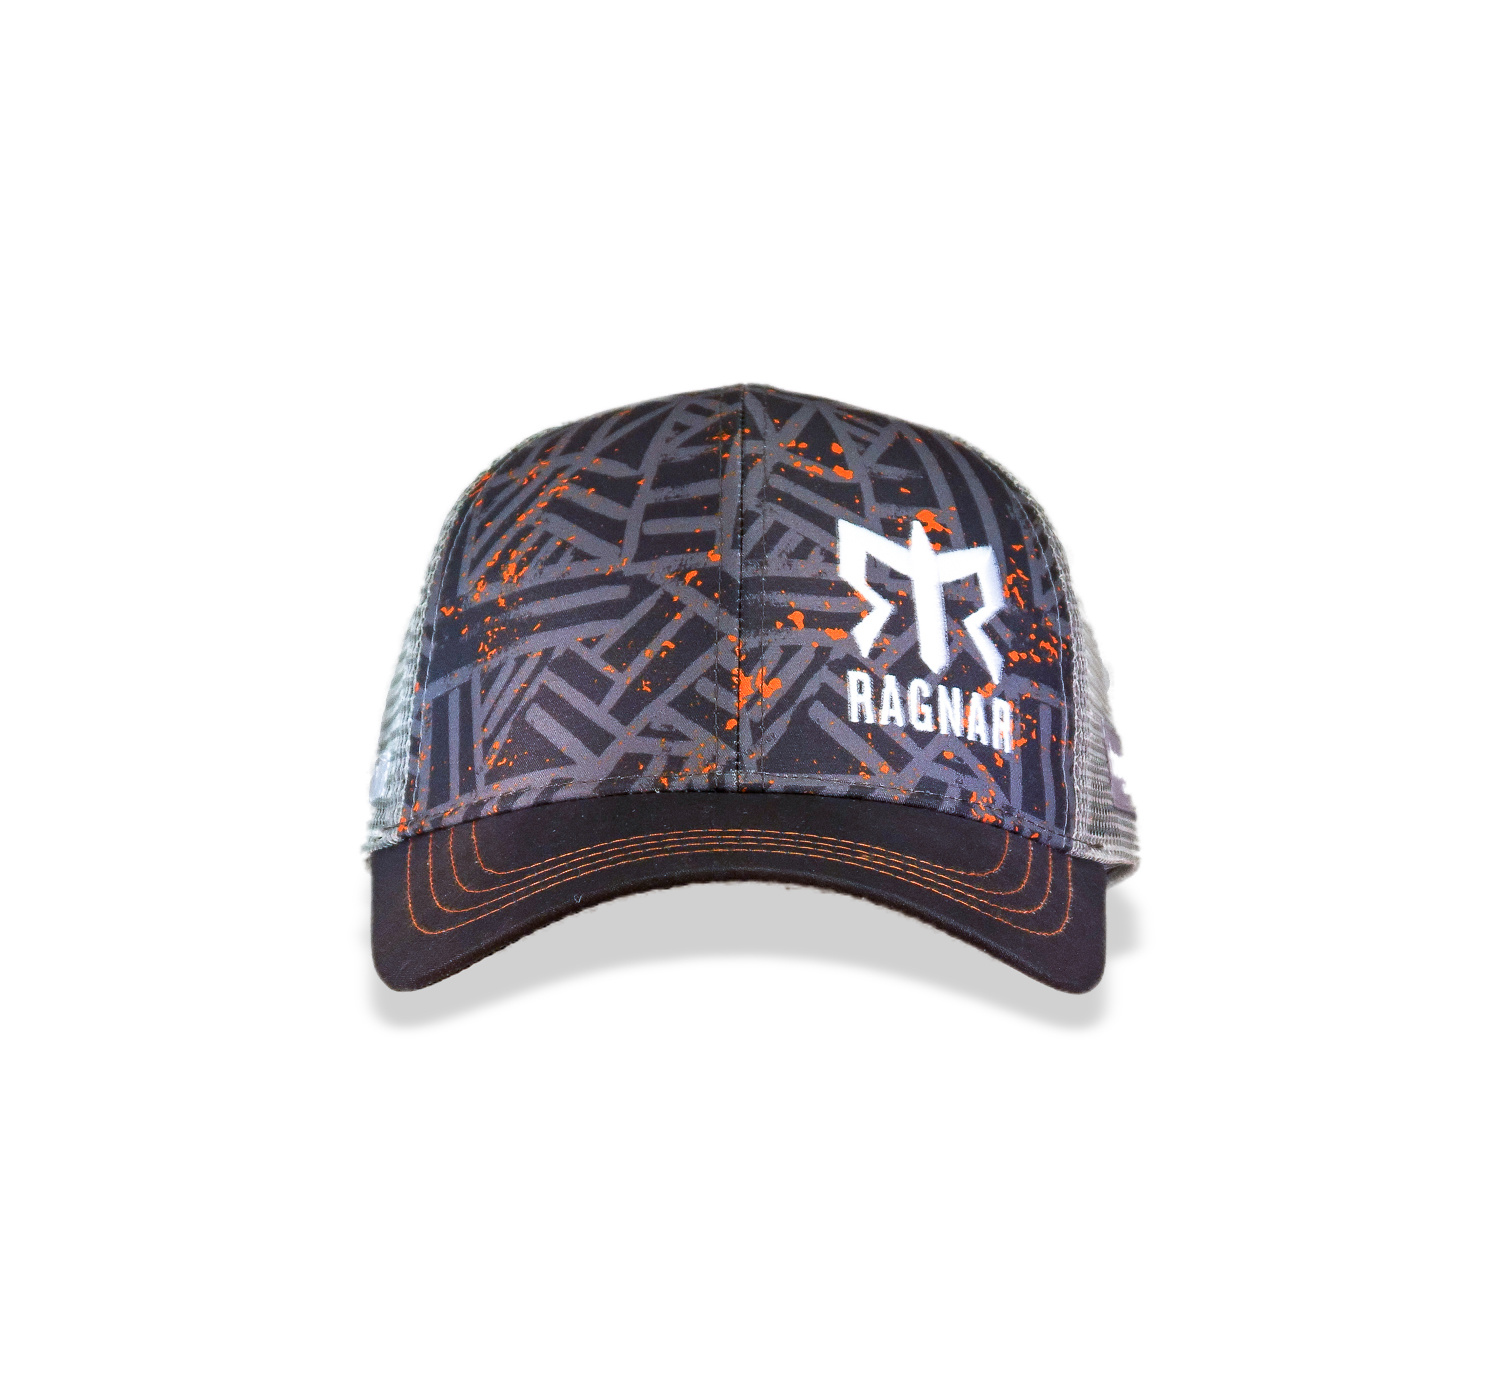 Men's Ragnar Technical Trucker Hat - Grey/Orange Flecks